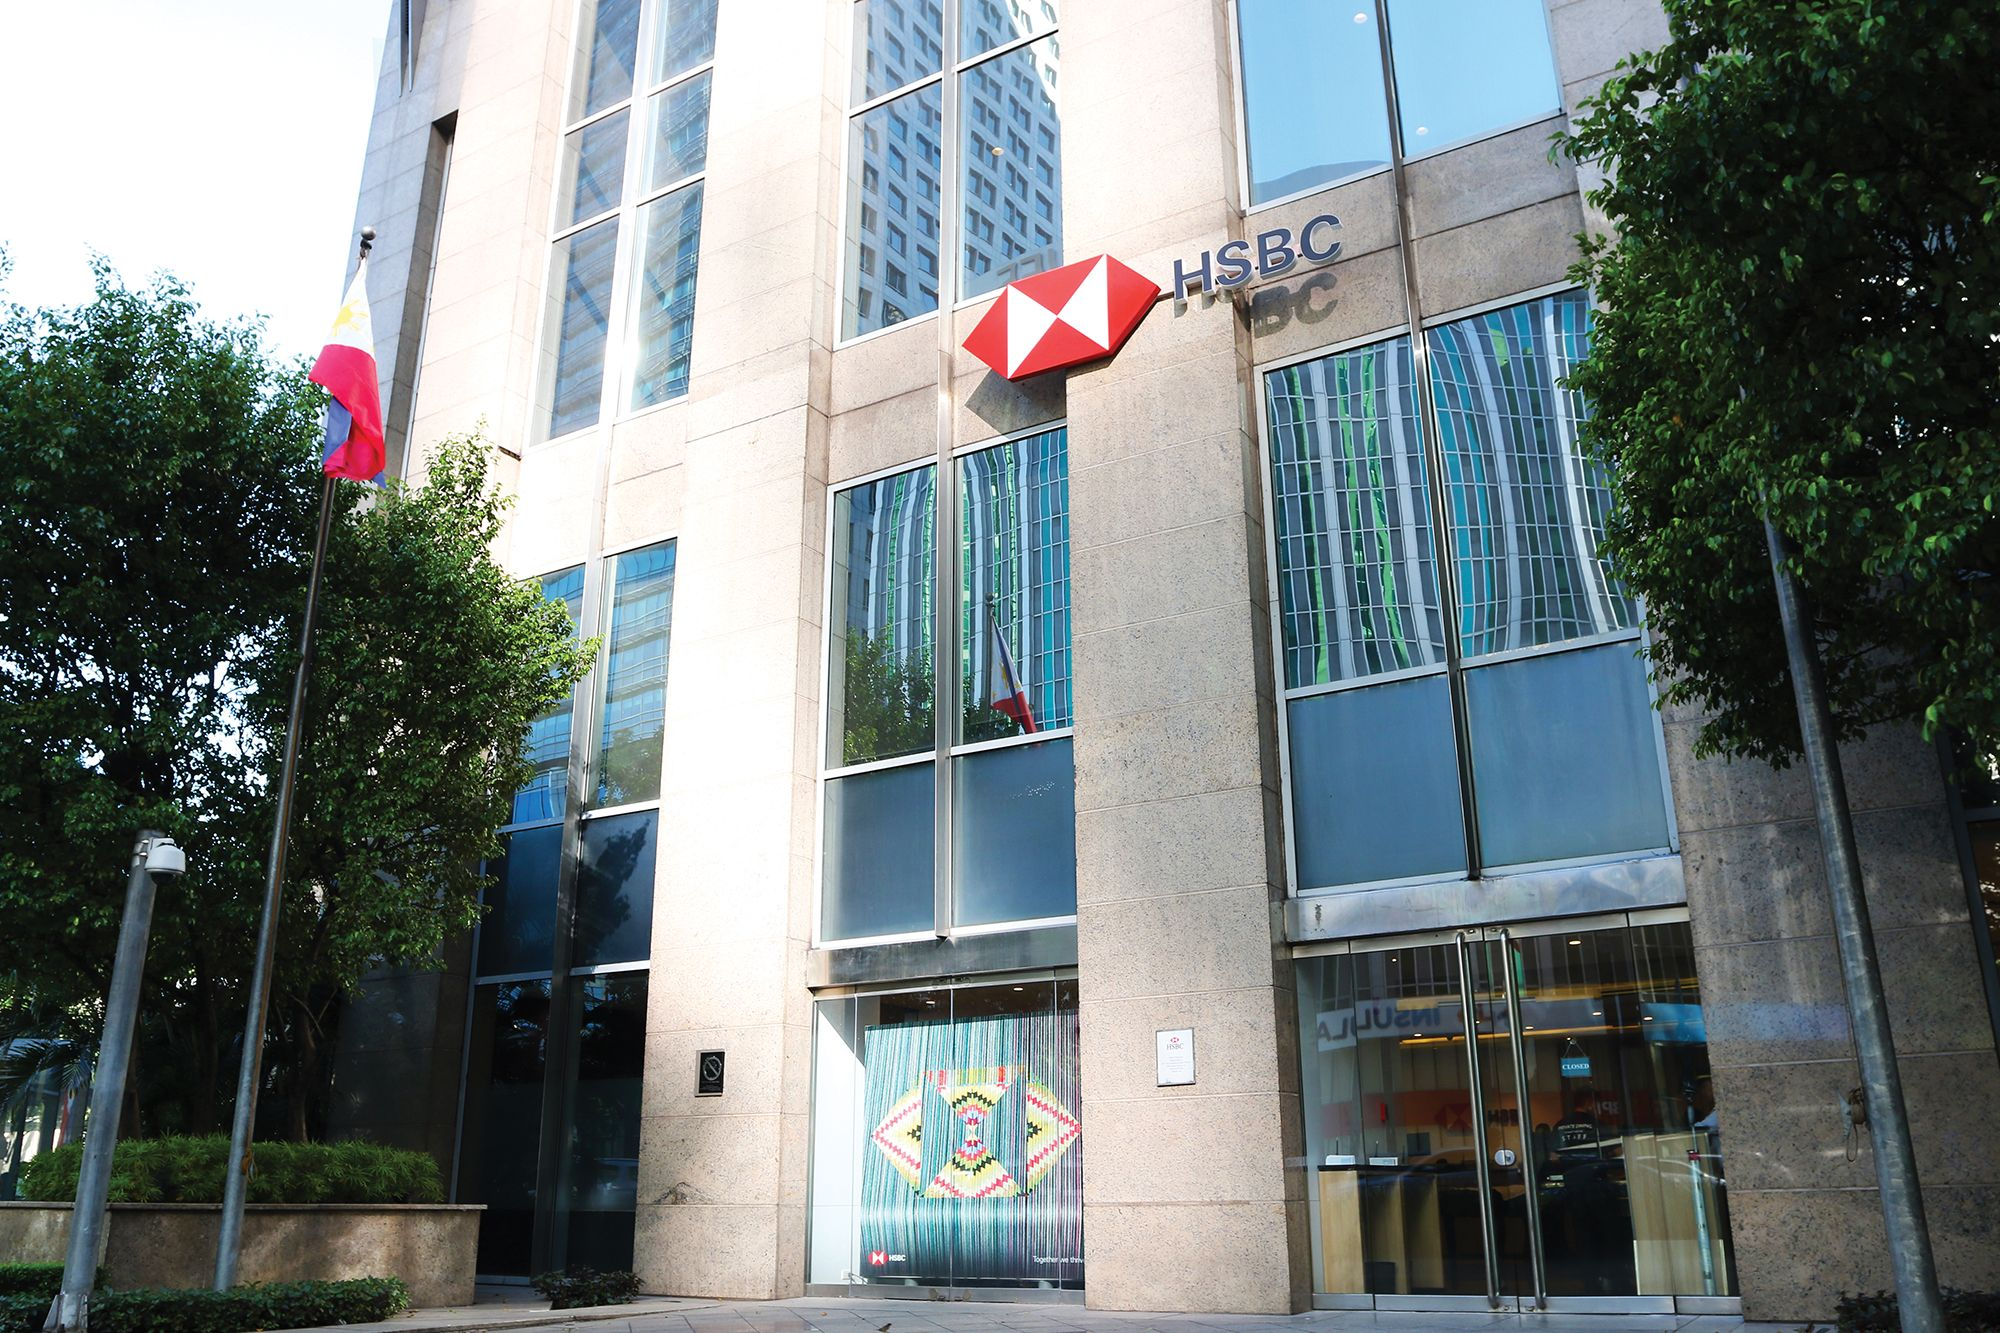 Hongkong and Shanghai Banking Corporation (HSBC): Illustrious Years of Banking